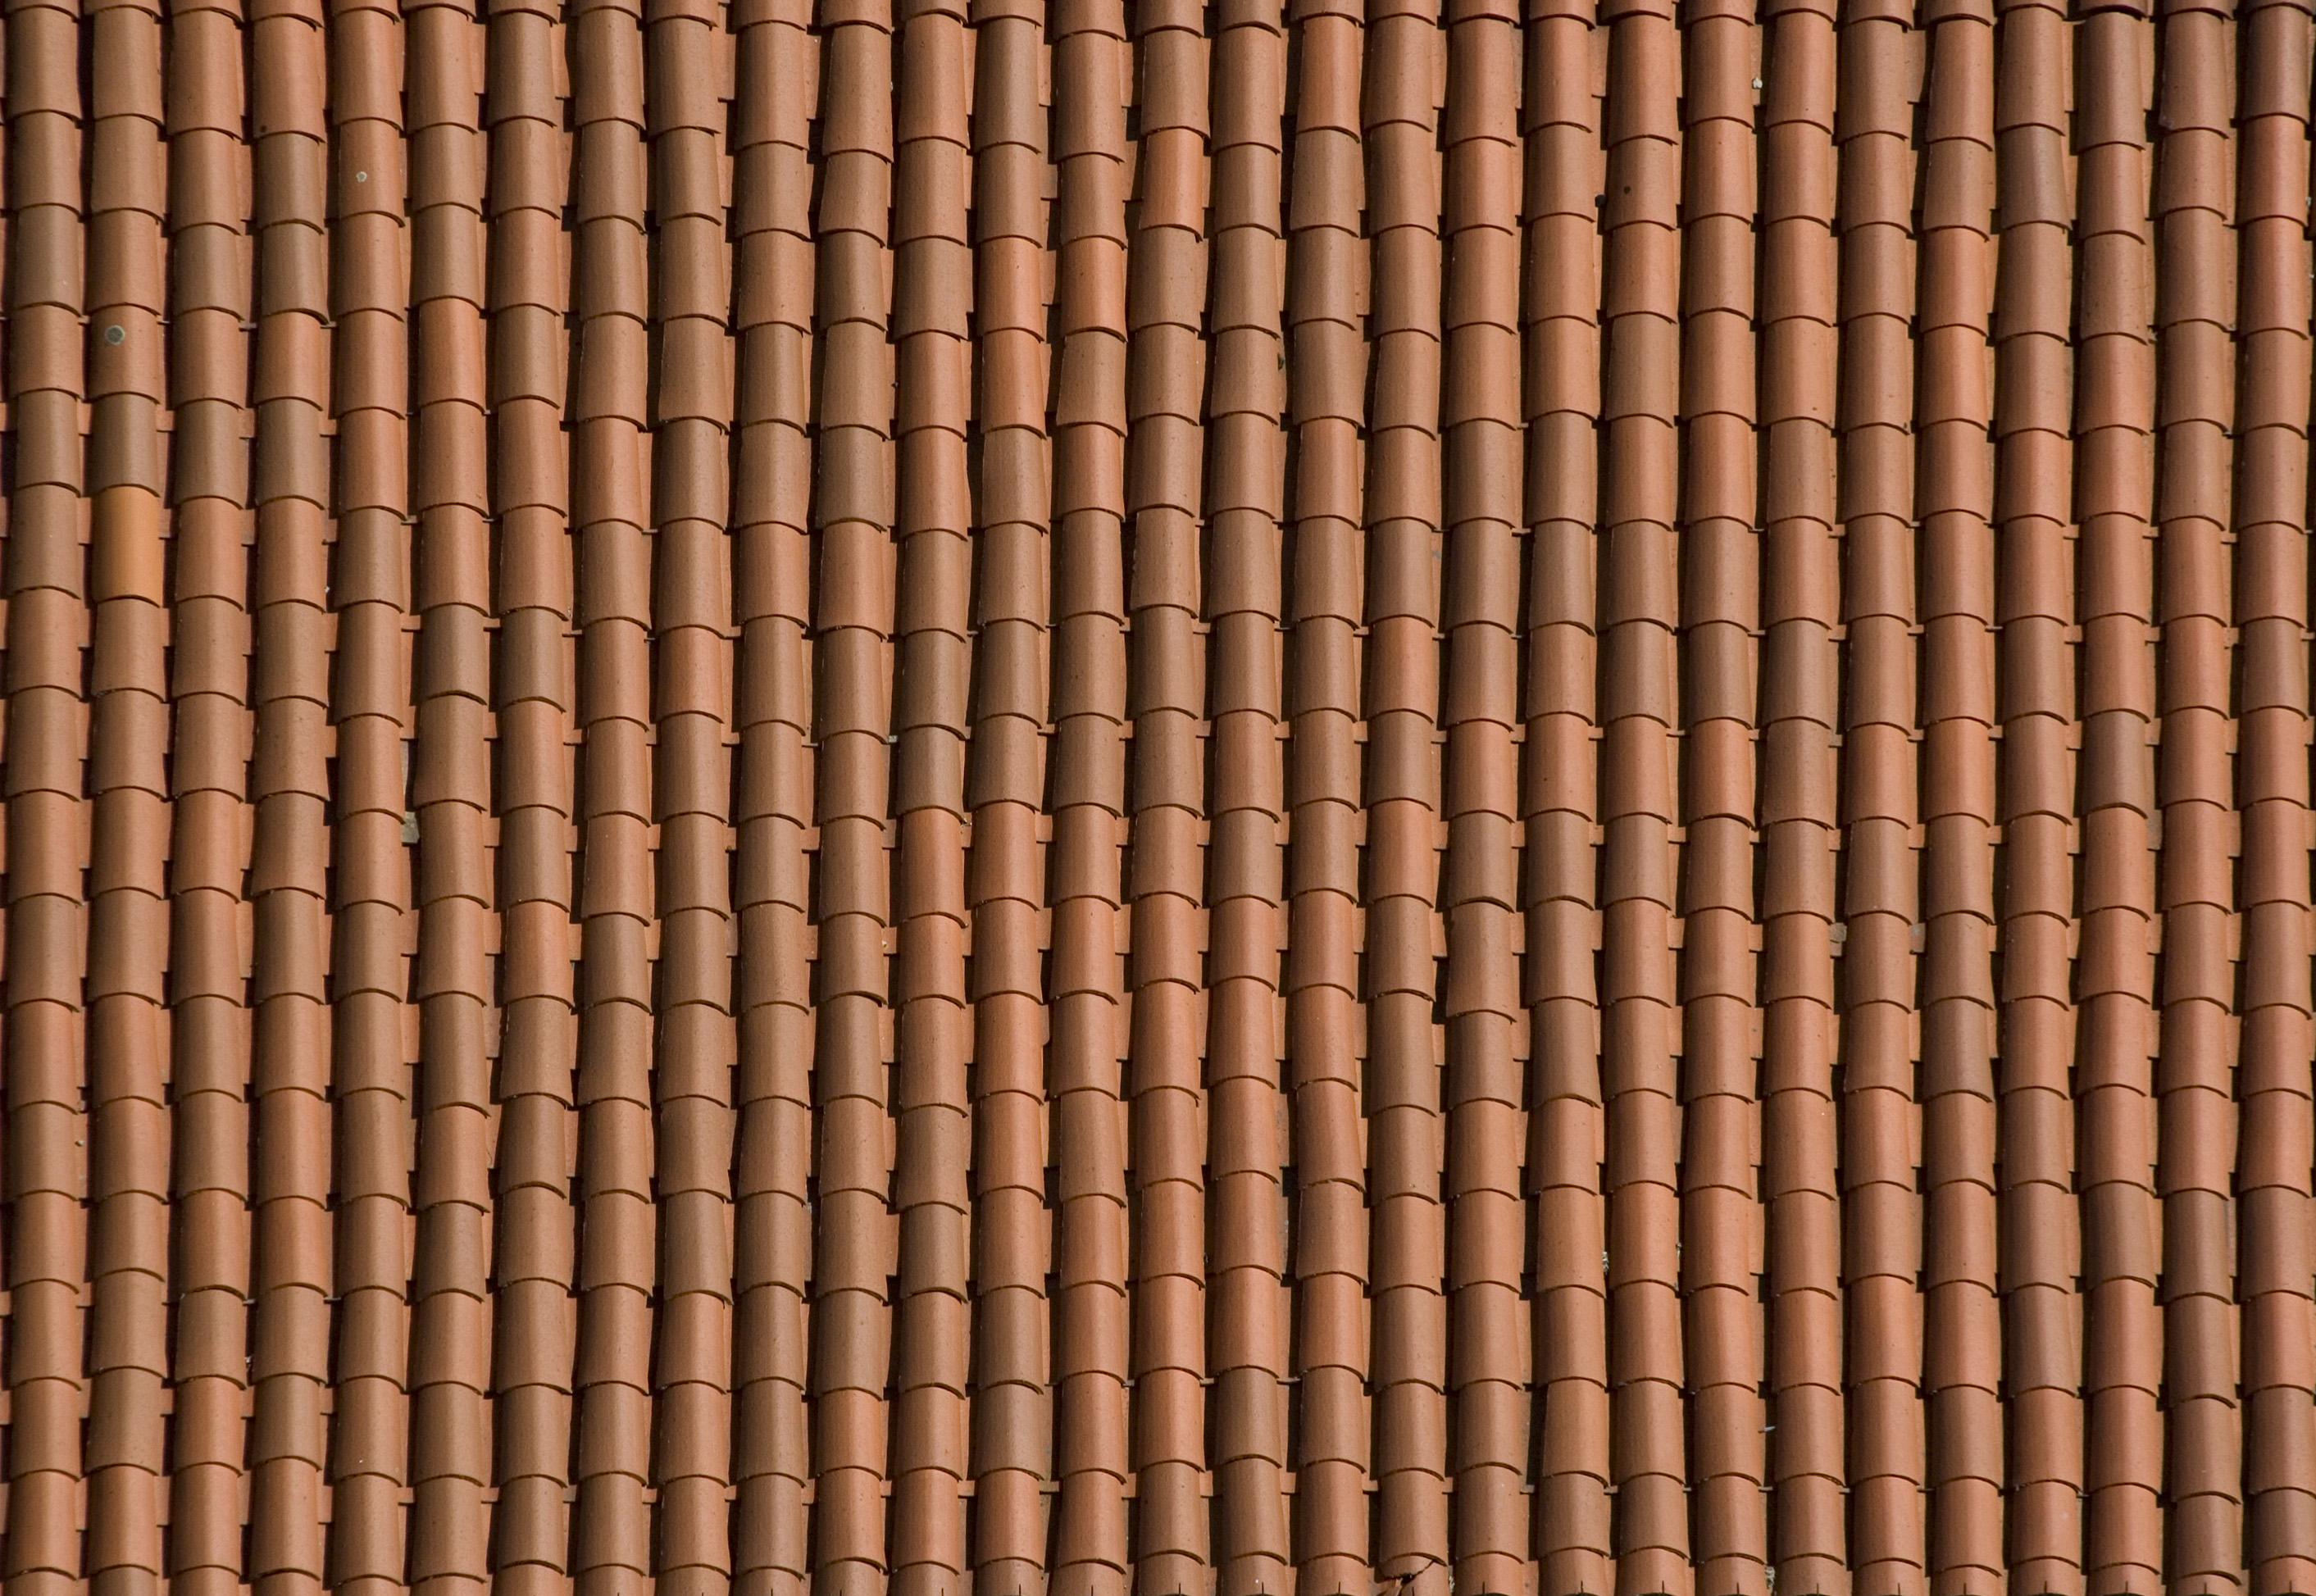 Brick Roof Texture roofing roof tile texture